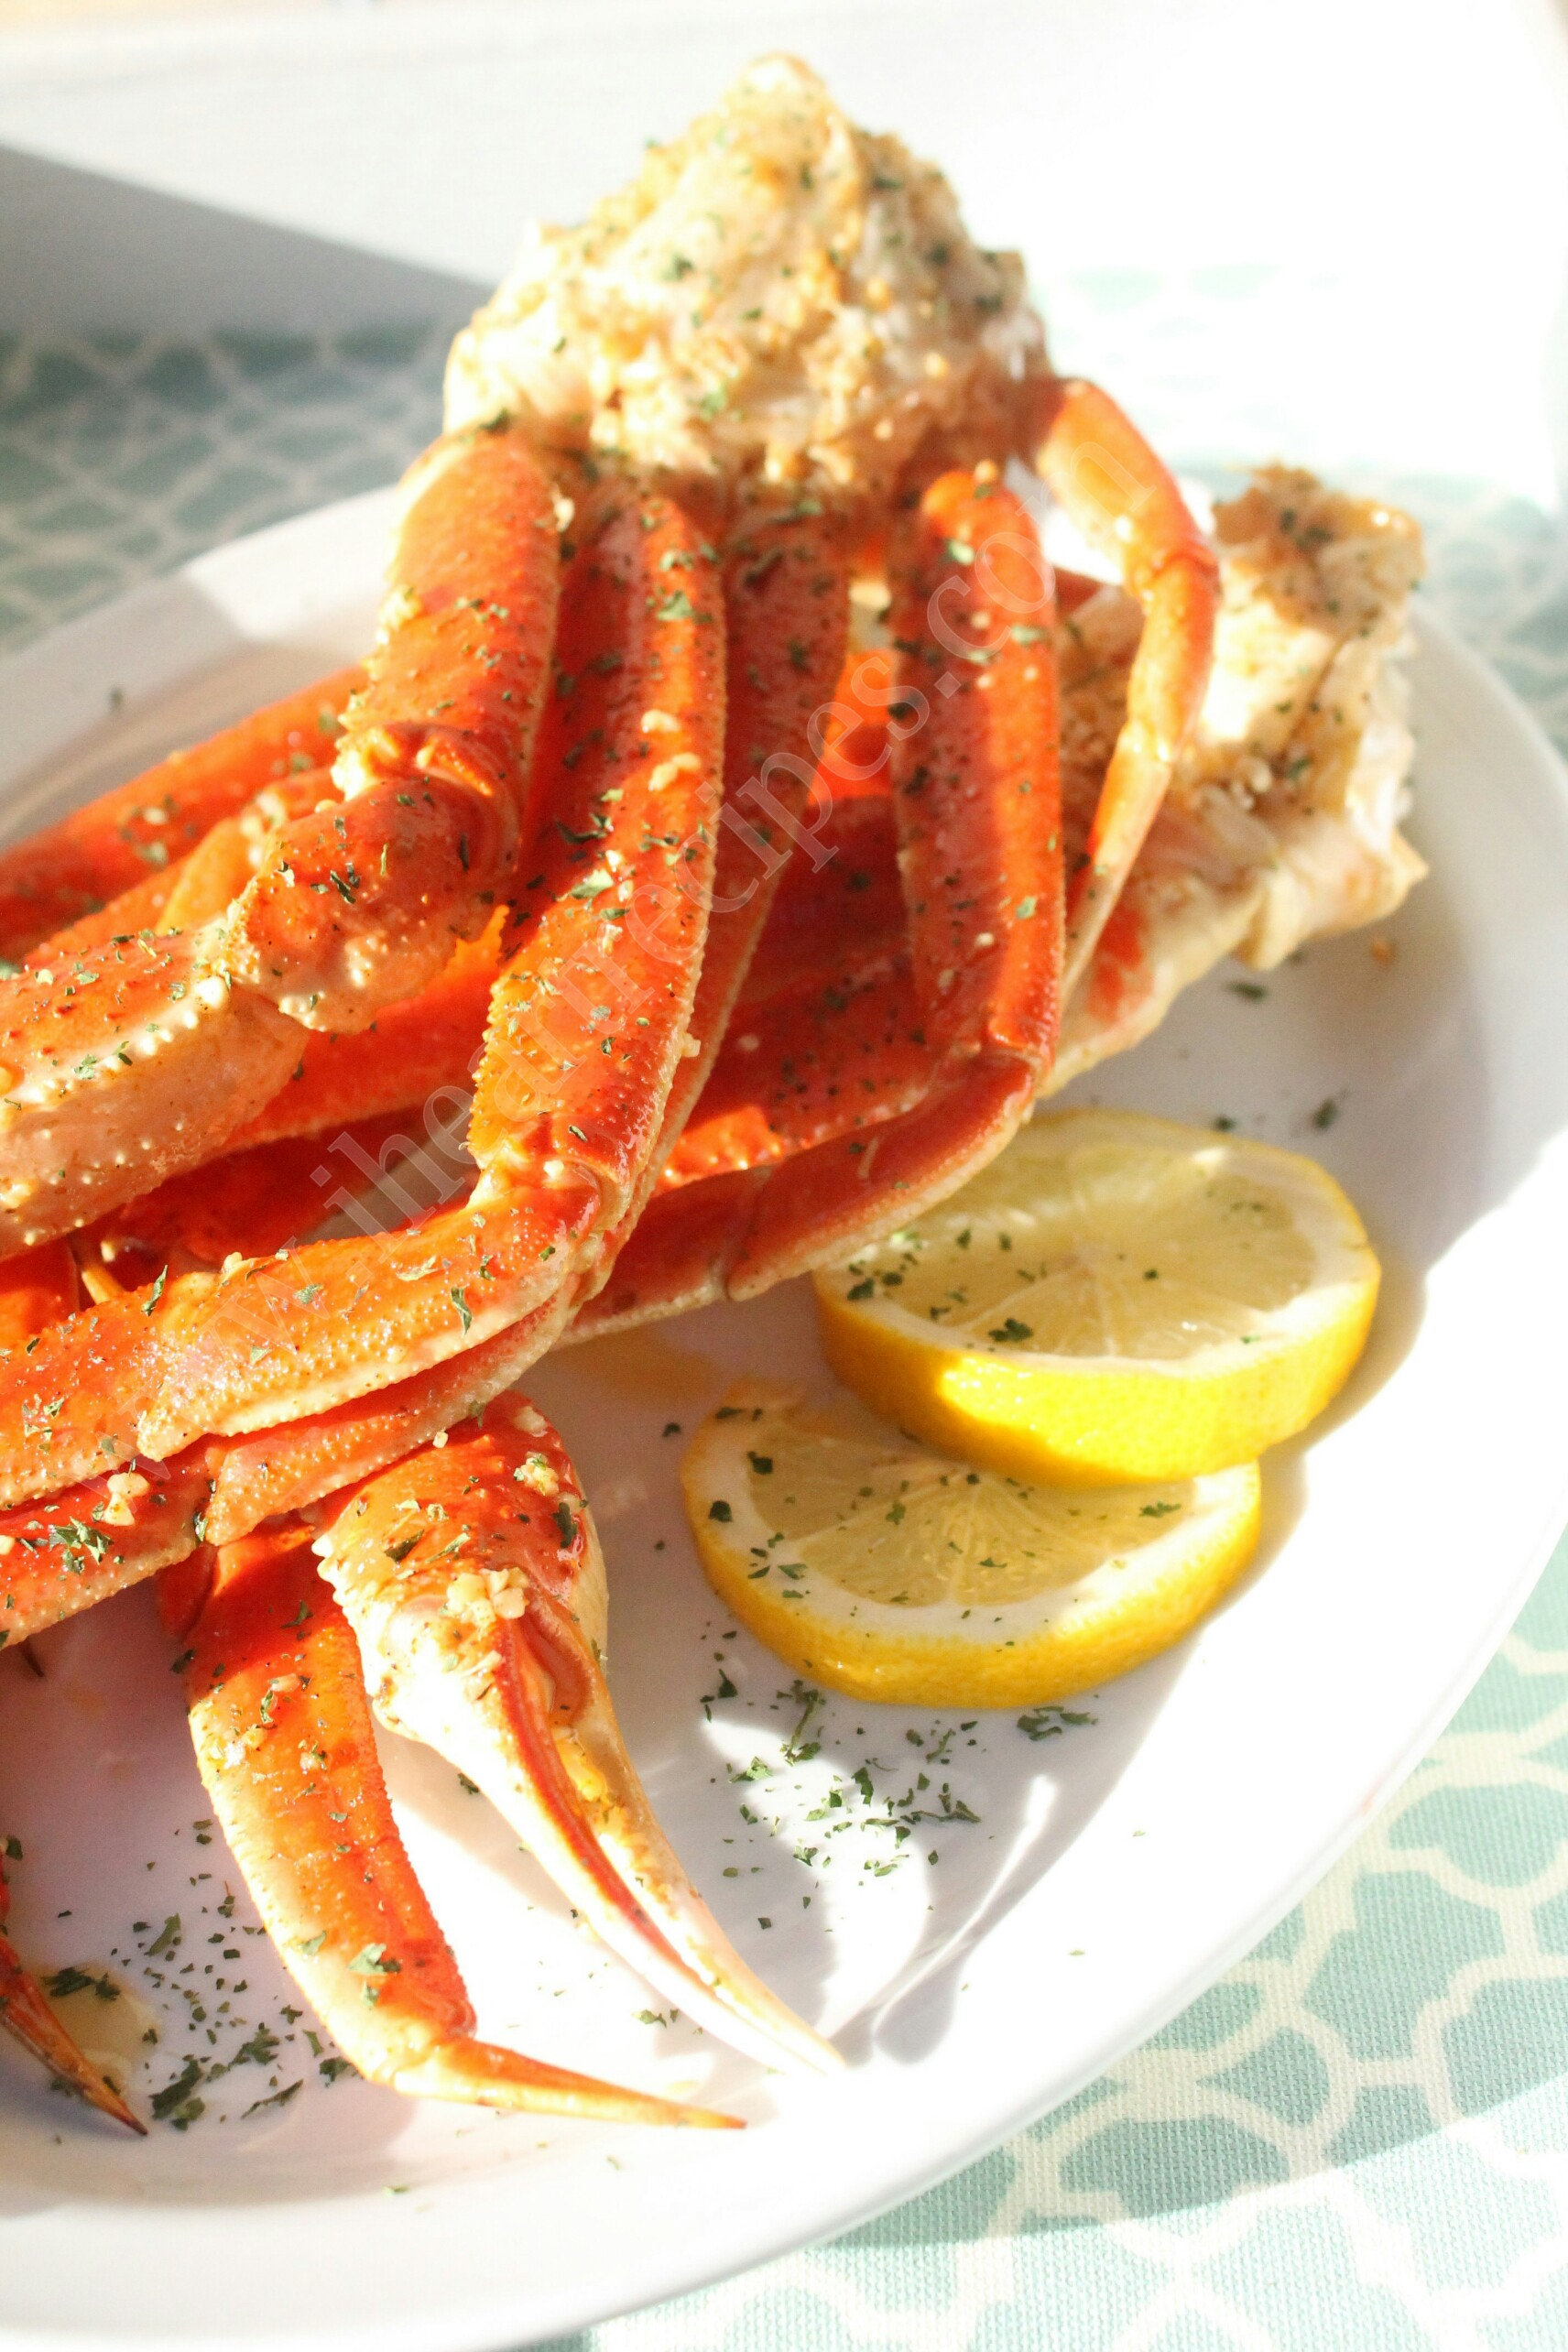 These baked crab legs are coated in a delicious cajun seasoning, mixed with garlic, butter, and plenty of lemon.